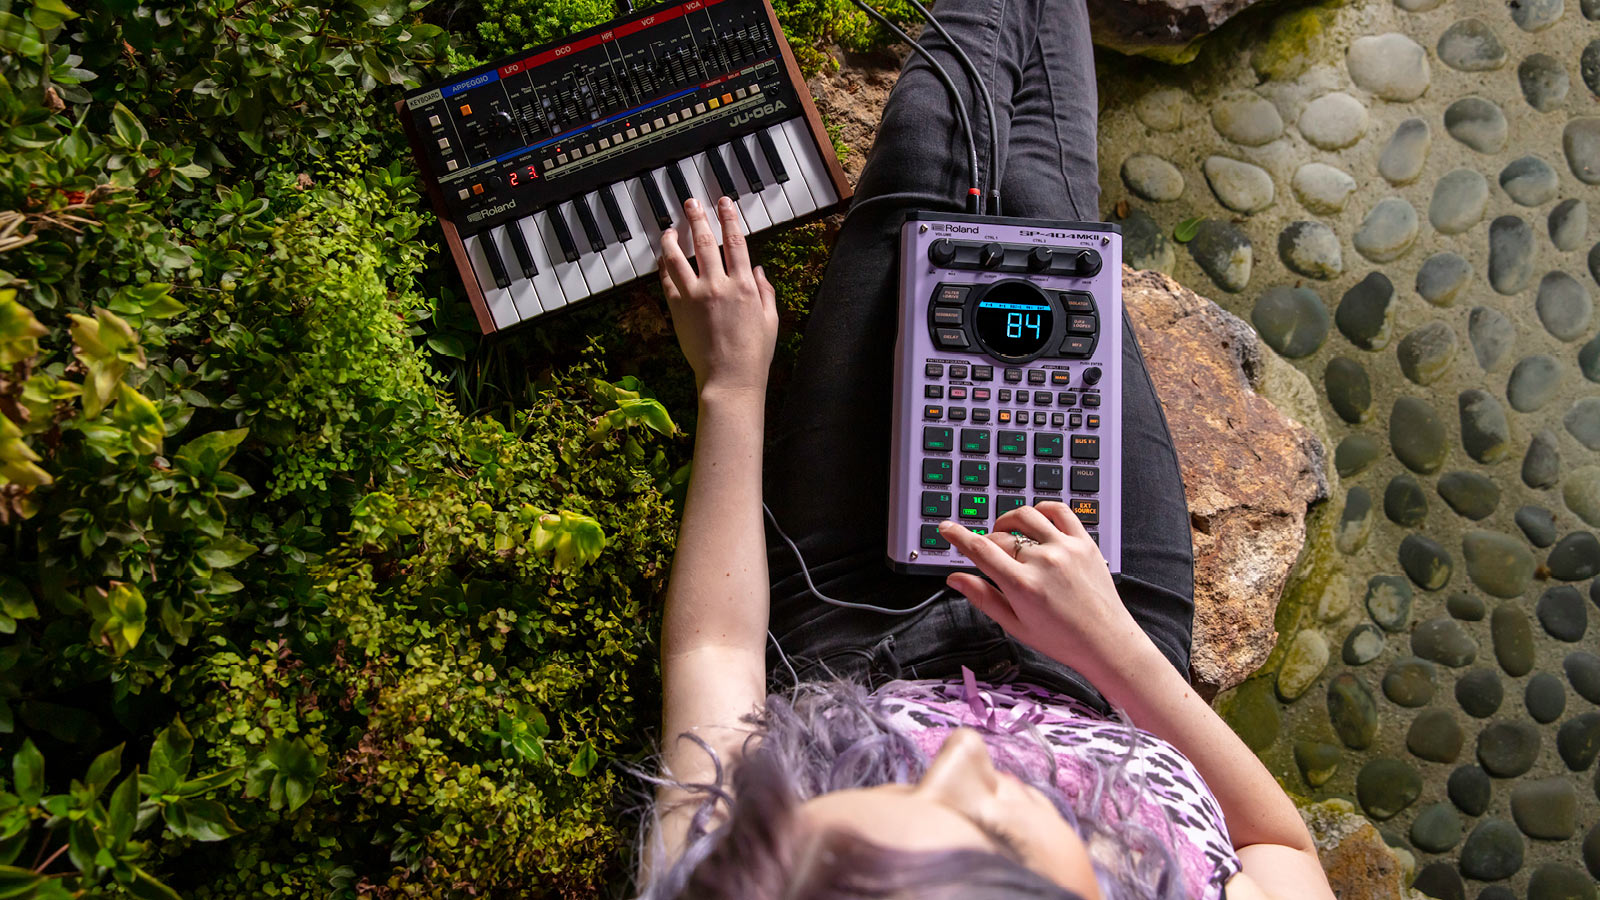 SP-404MKII | Performance-tuned sequencing